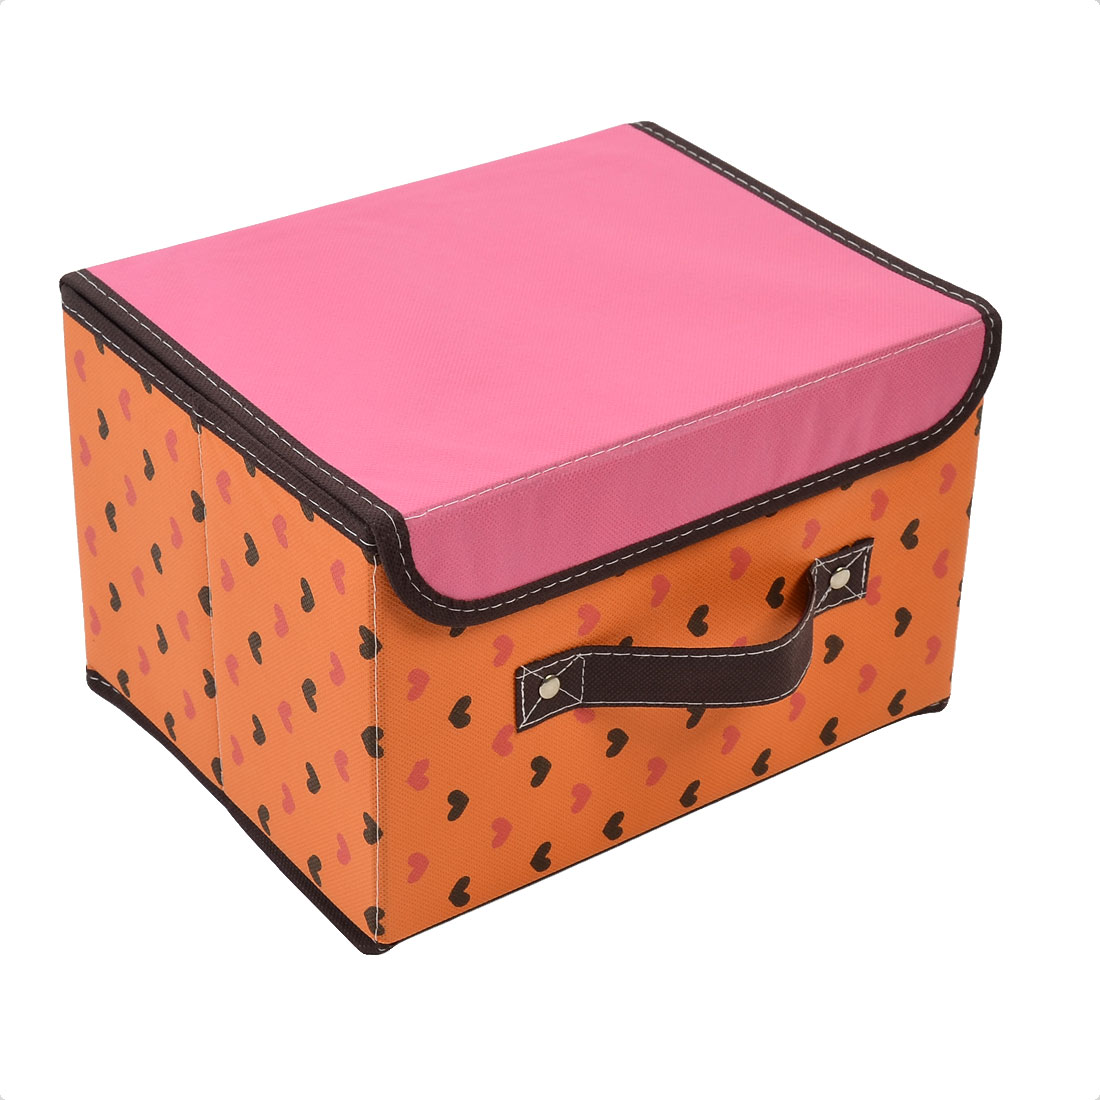 Non-woven Fabric Heart Pattern Foldable Storage Box Container Pink Orange